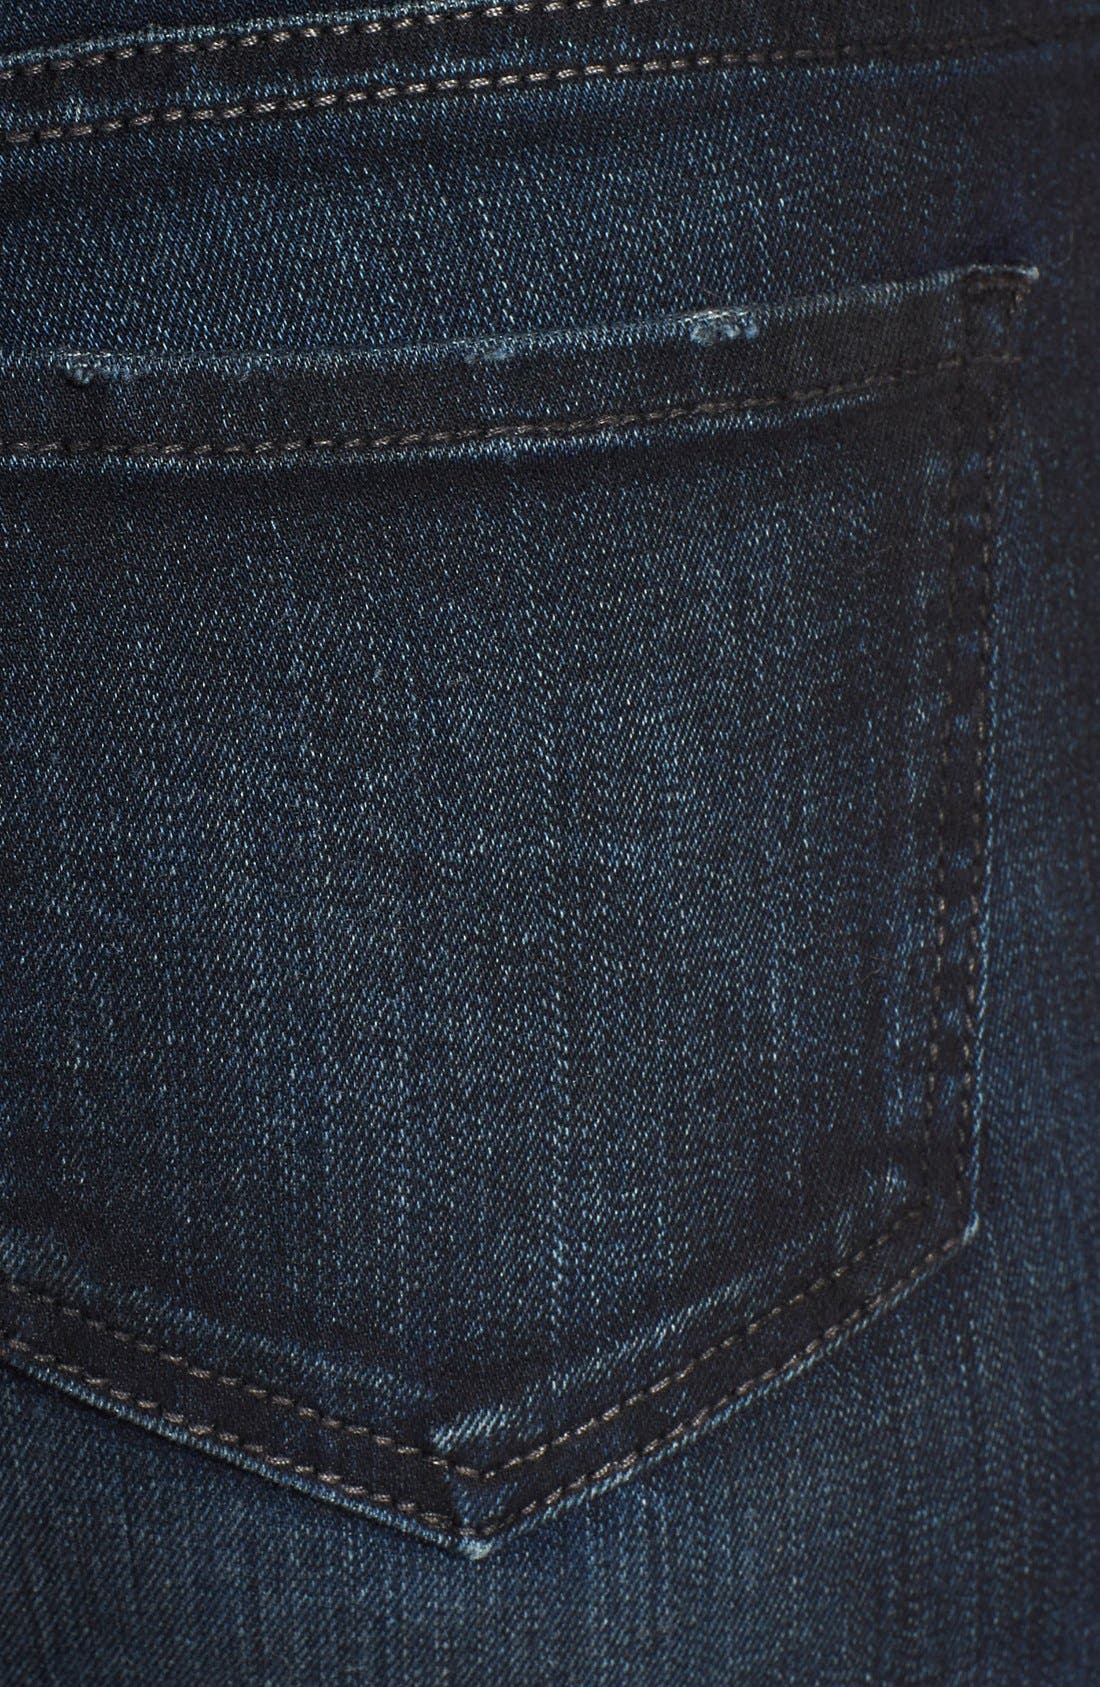 Alternate Image 3  - KUT from the Kloth 'Diana' Zip Detail Stretch Skinny Jeans (Privileged)